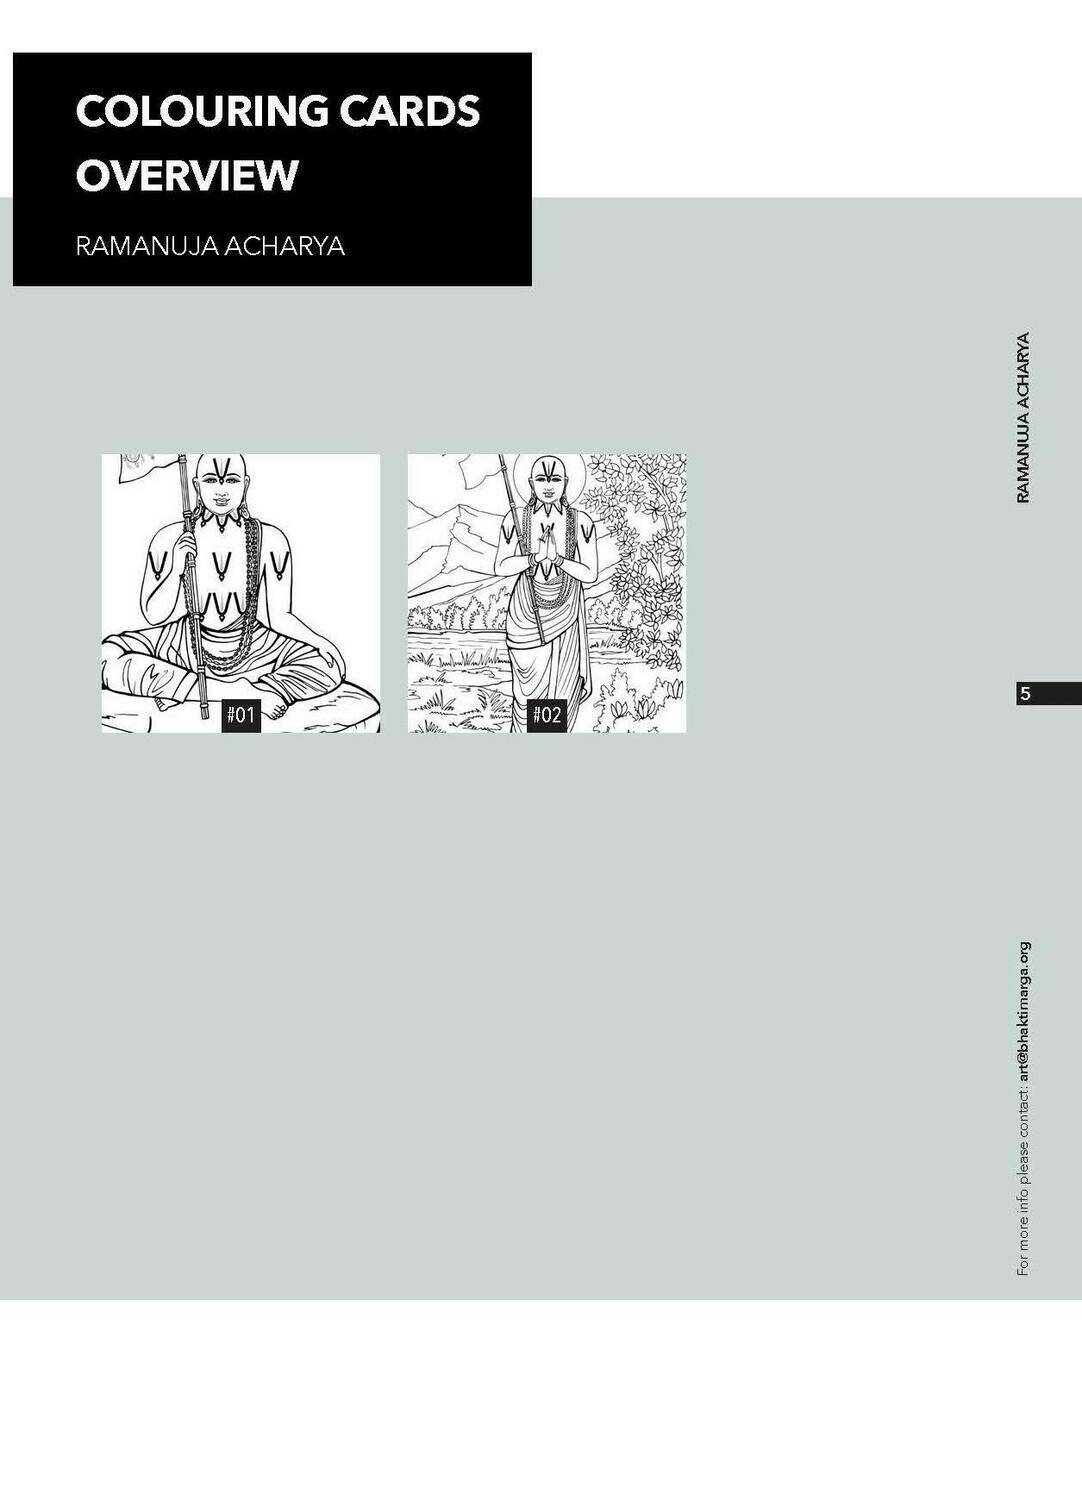 Colouring Cards 'RAMANUJA ACHARYA'